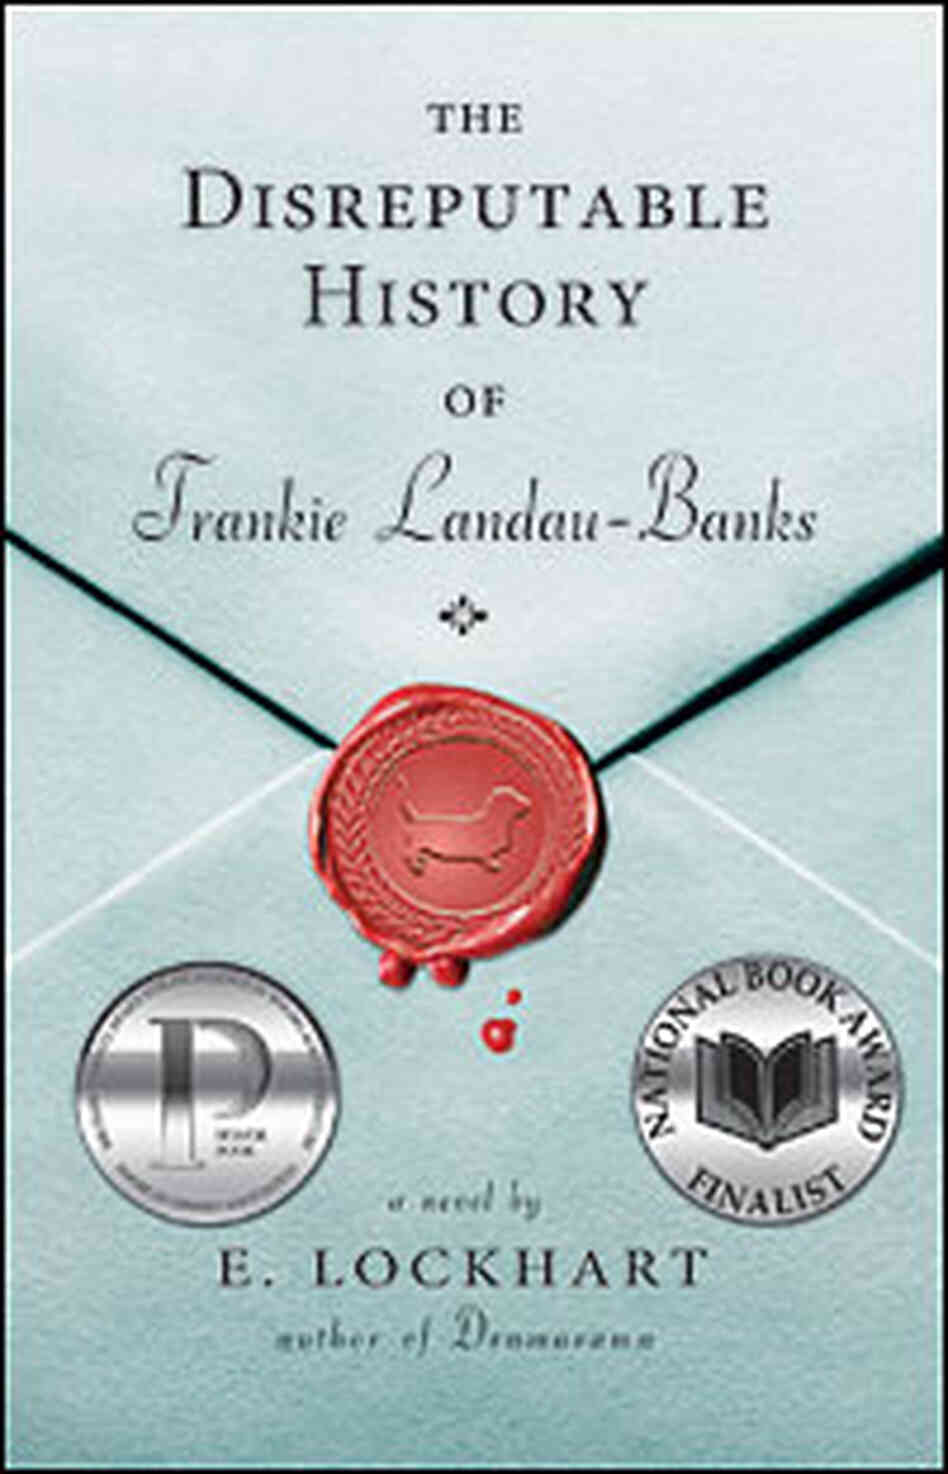 a comprehensive analysis of the disreputable history of frankie landau banks a novel by e lockhart By e lockhart  the disreputable history of frankie landau-banks analysis   the tone of the book is helpful, informative, and rather thoughtful, if we may say.